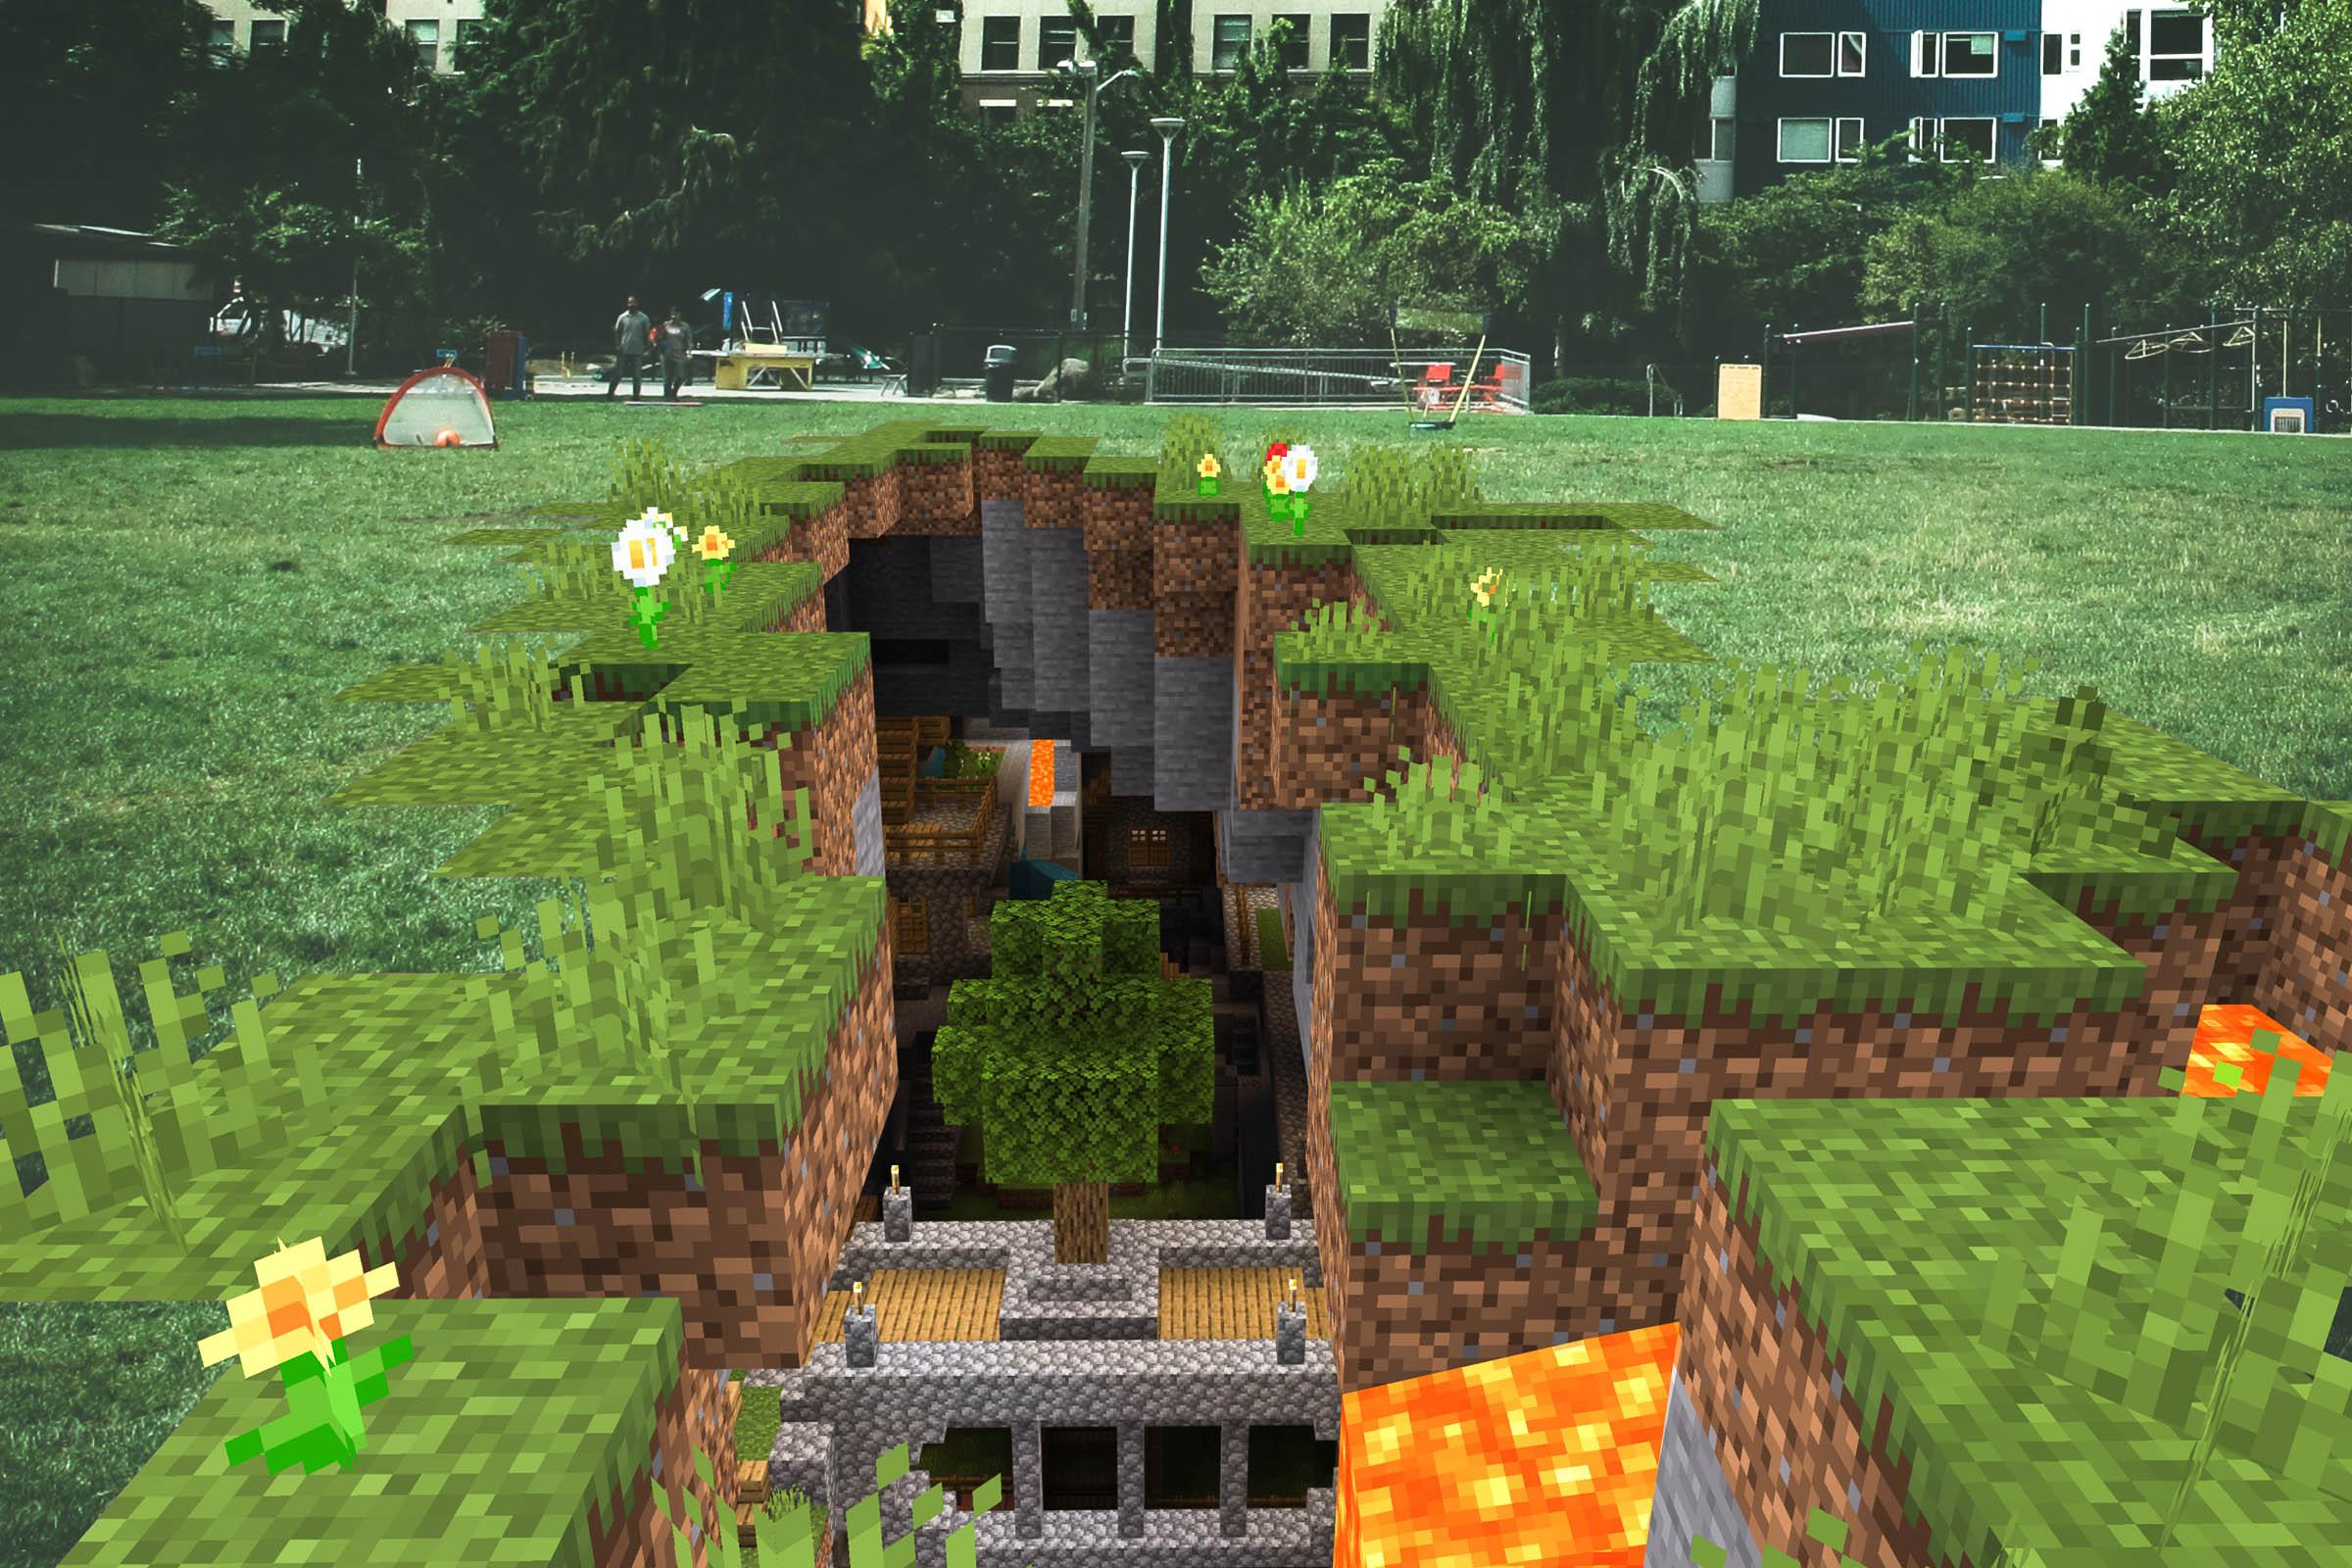 Minecraft Earth Updates and Changes